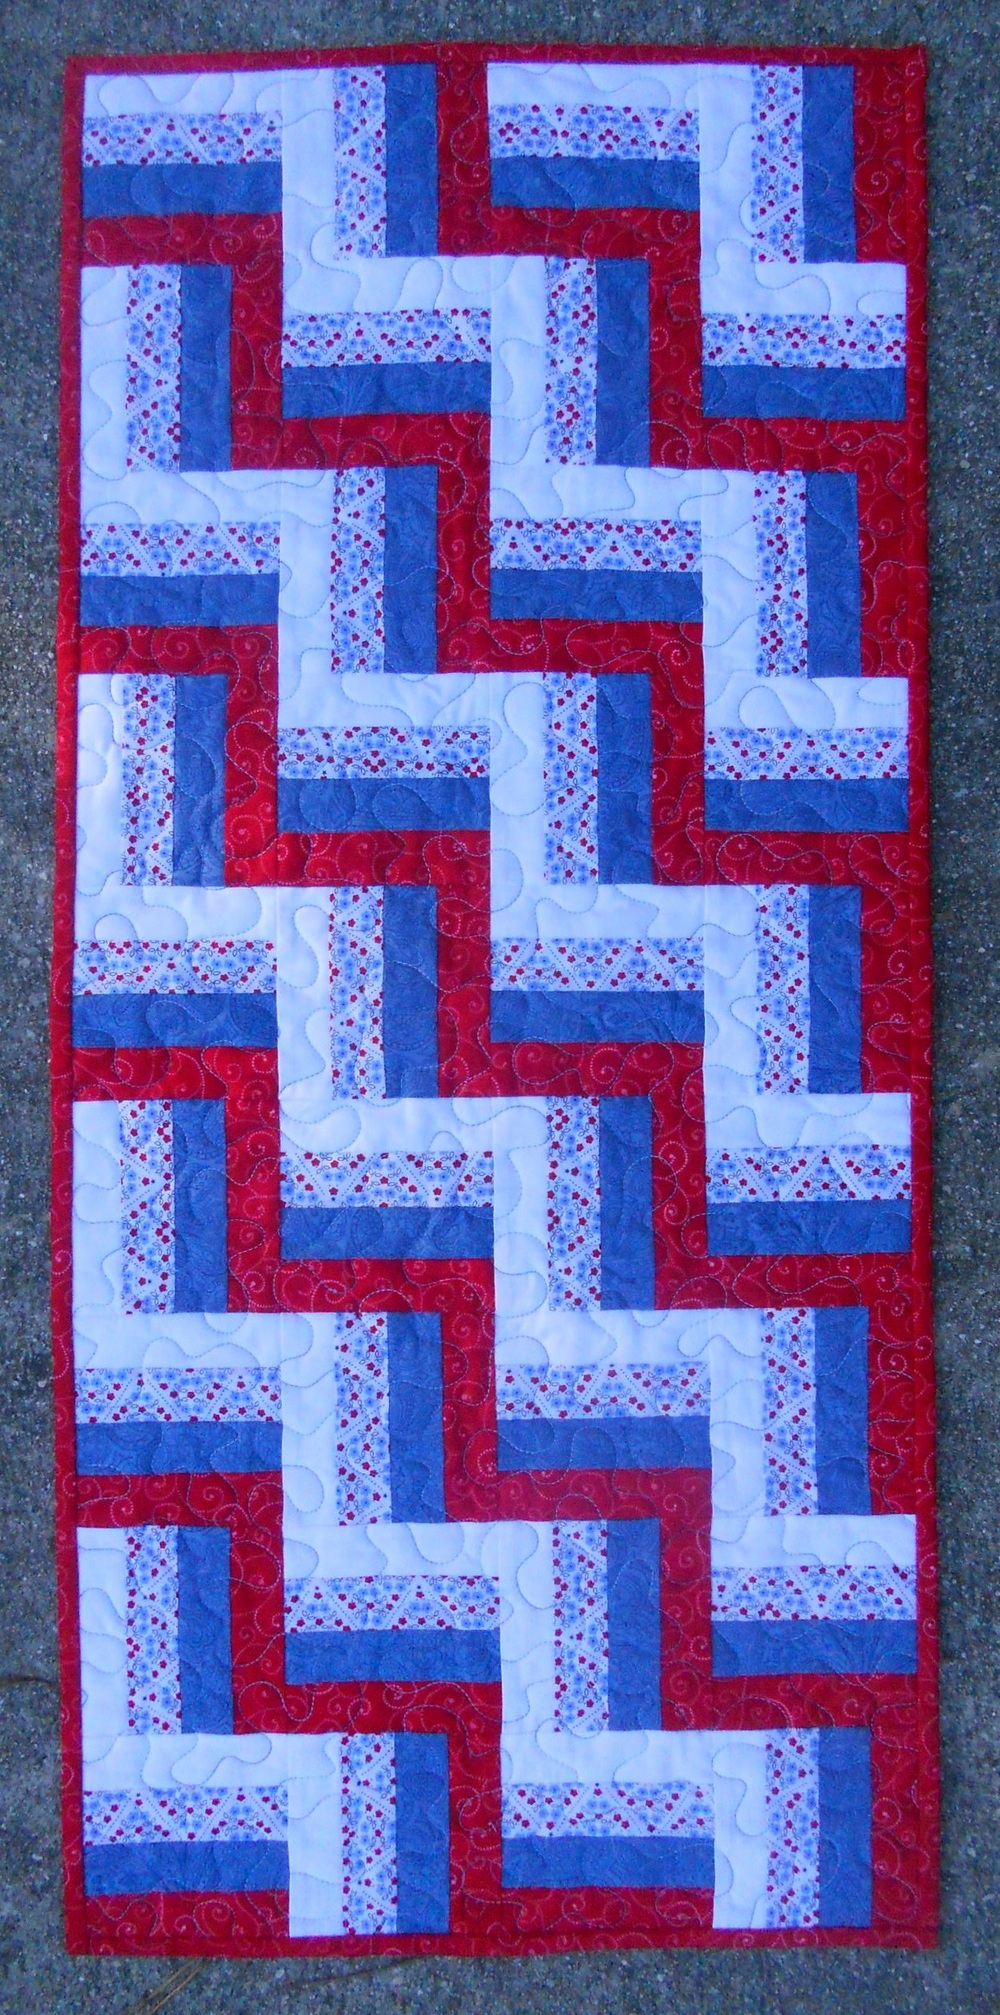 Lickity Split Rail Fence Table Runner Favequilts Com